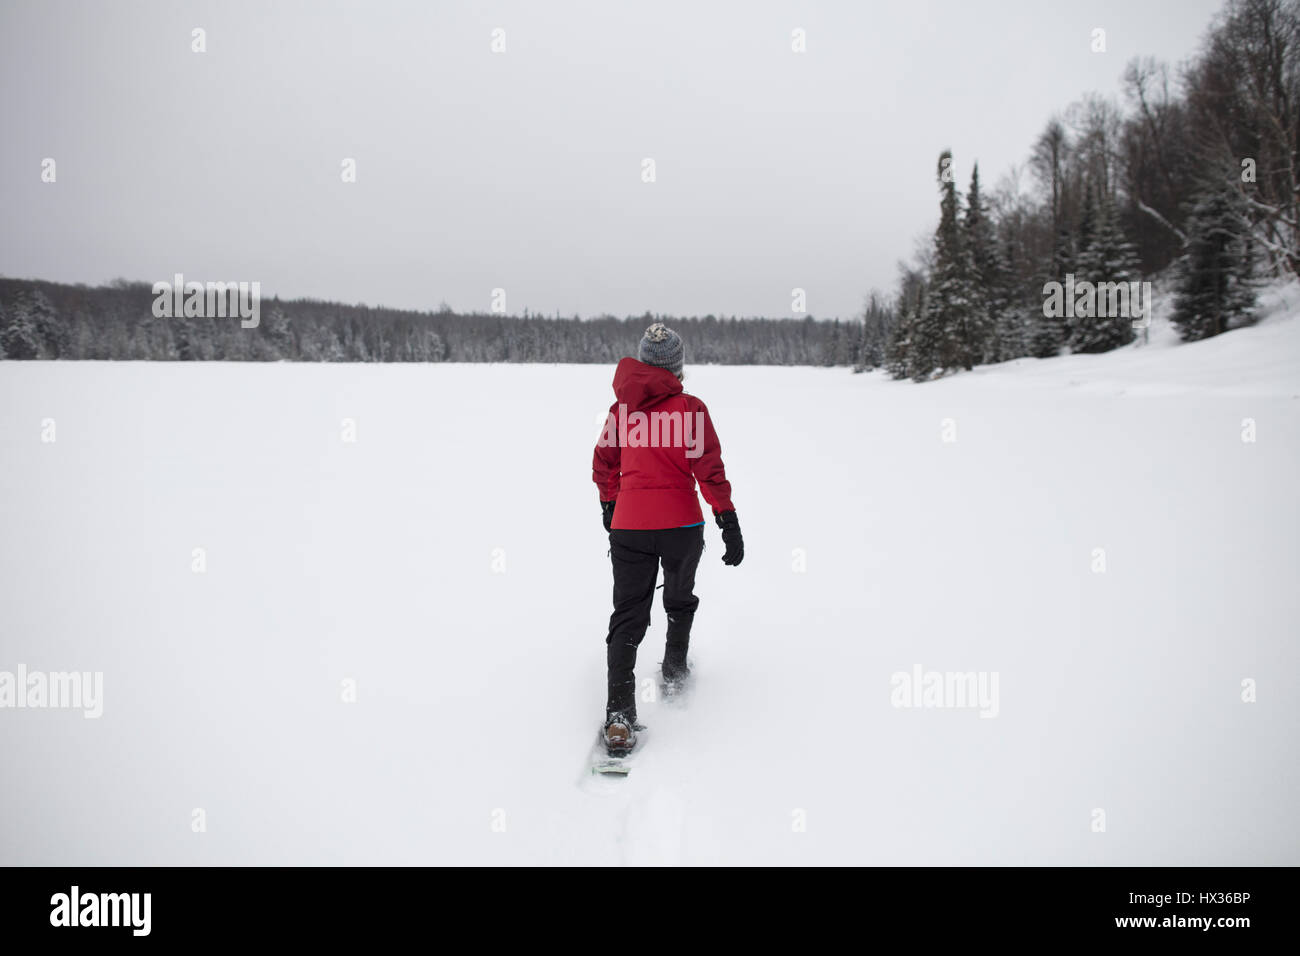 A lady in a red jacket snowshoes after a snow storm in Hastings Highlands, Ontario, Canada. - Stock Image